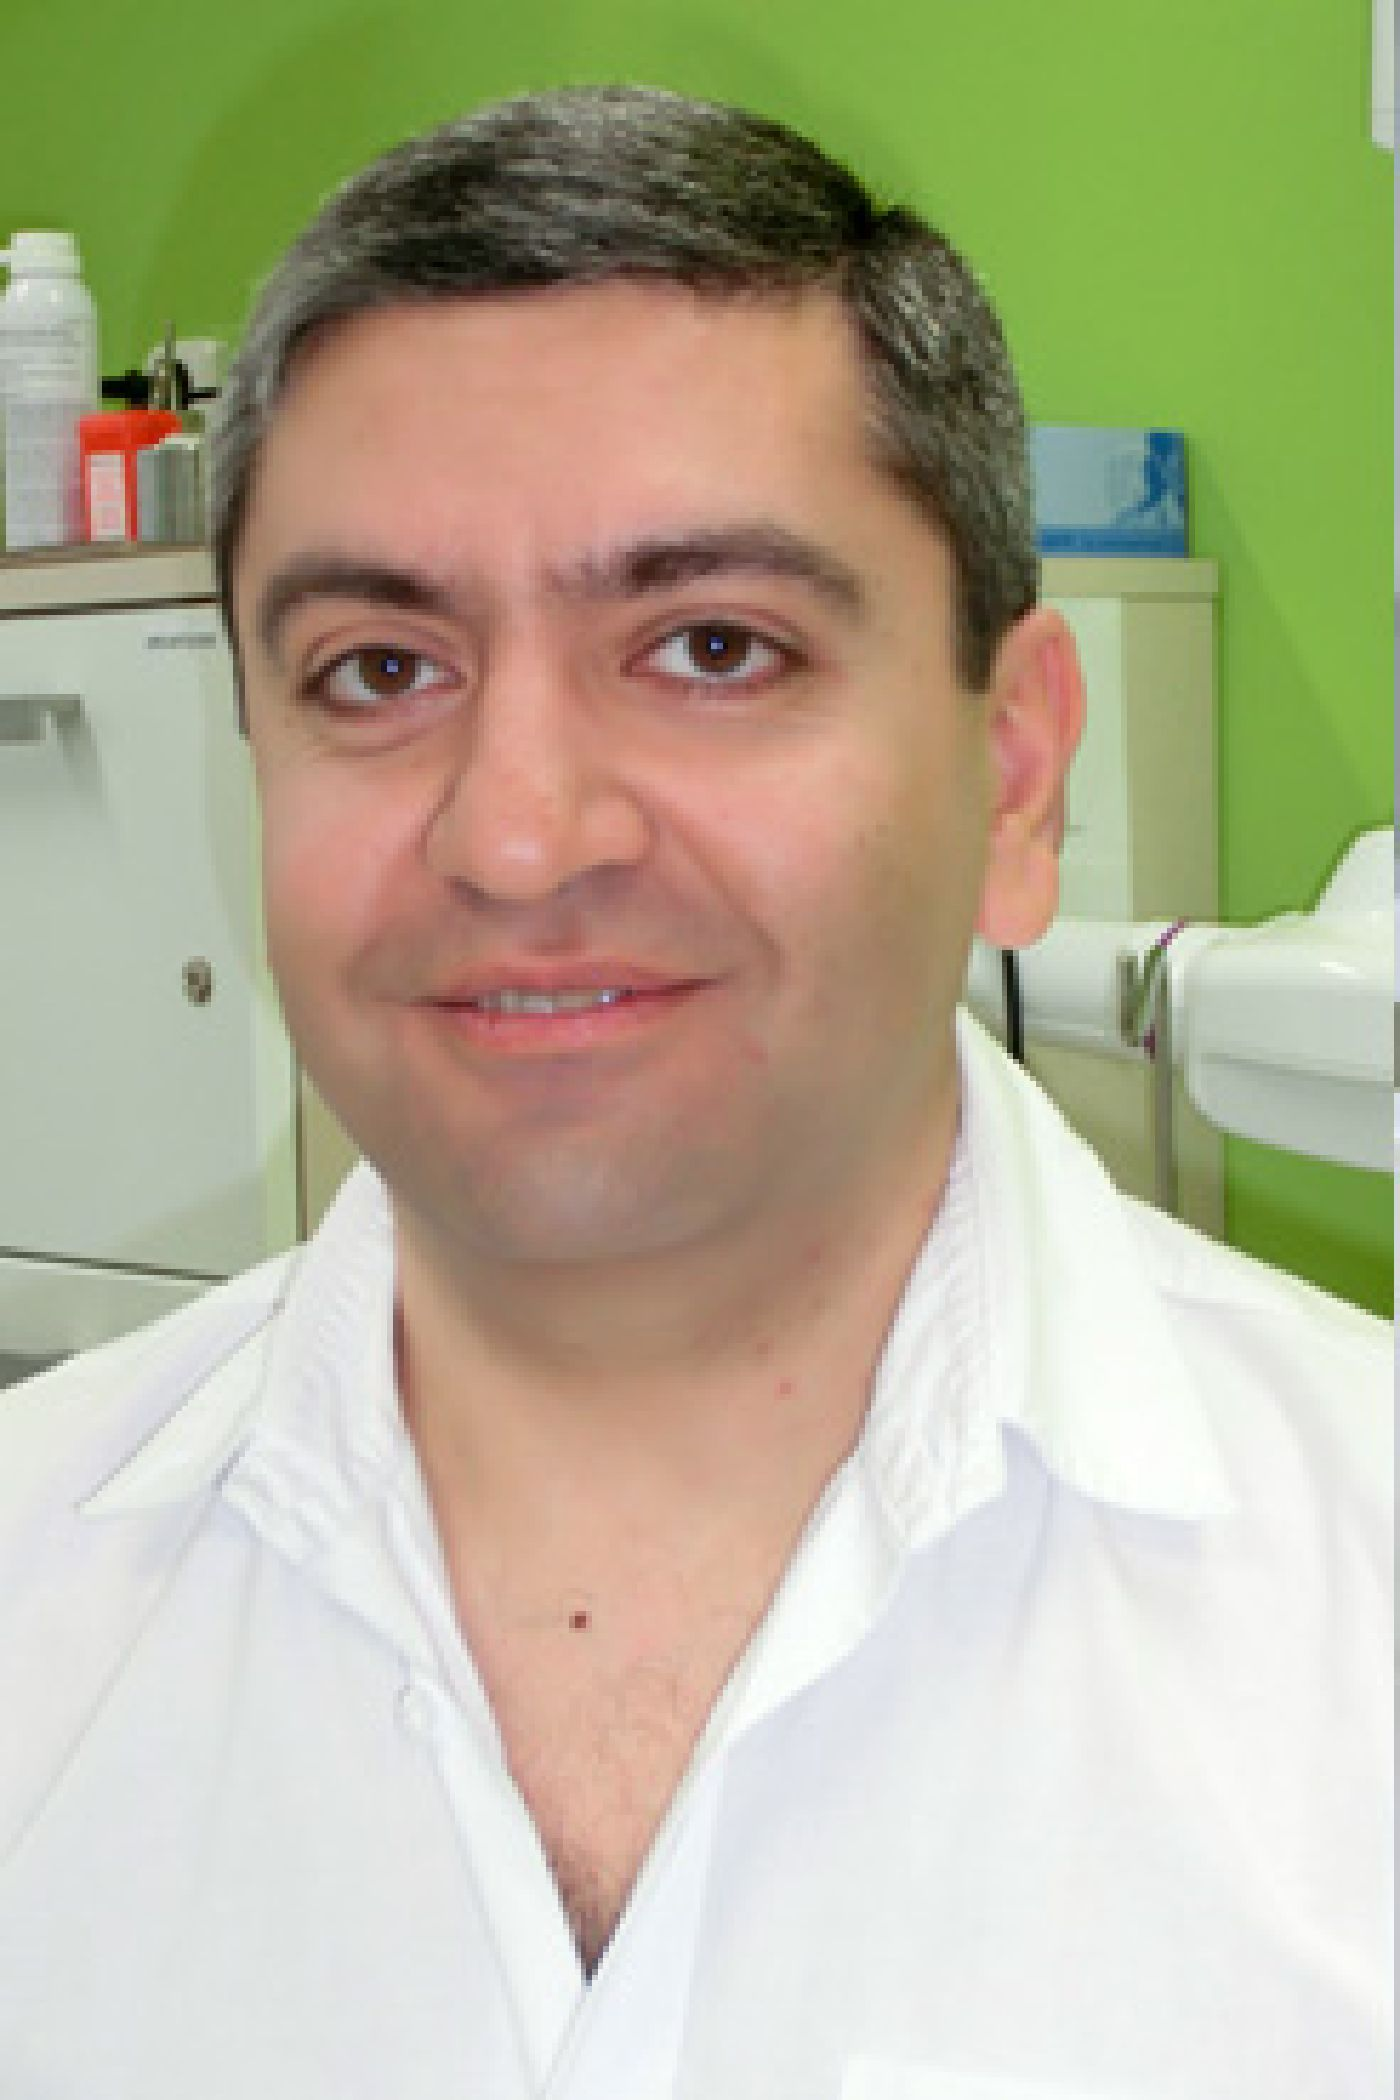 MUDr. Edgar Oganessian, Ph.D.